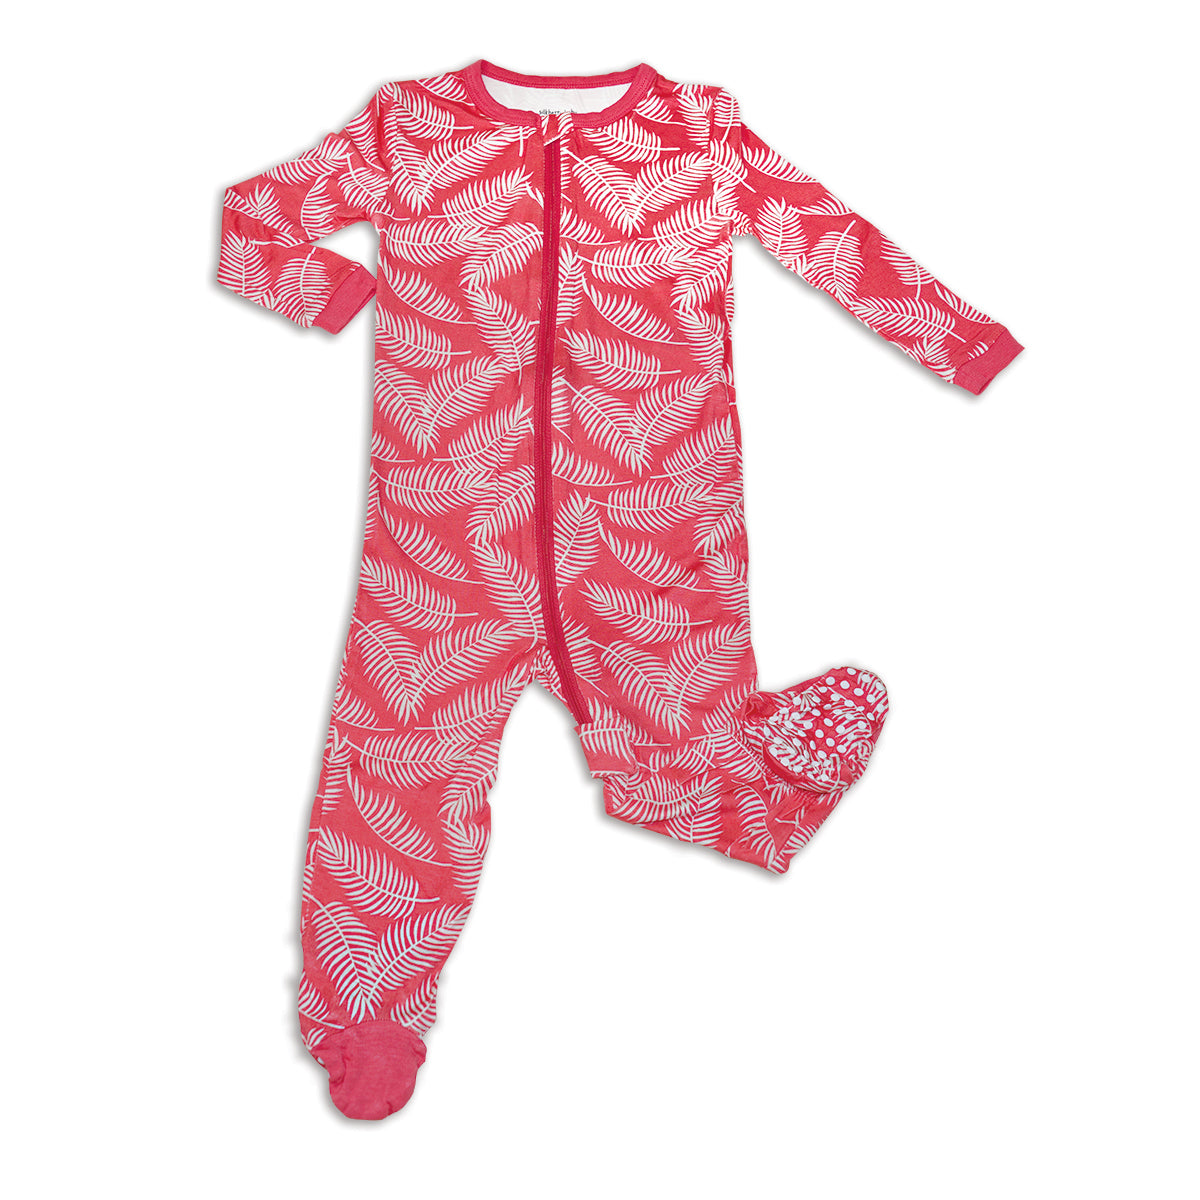 Bamboo Zip up Footed Sleeper (Breezy Leaves Print)